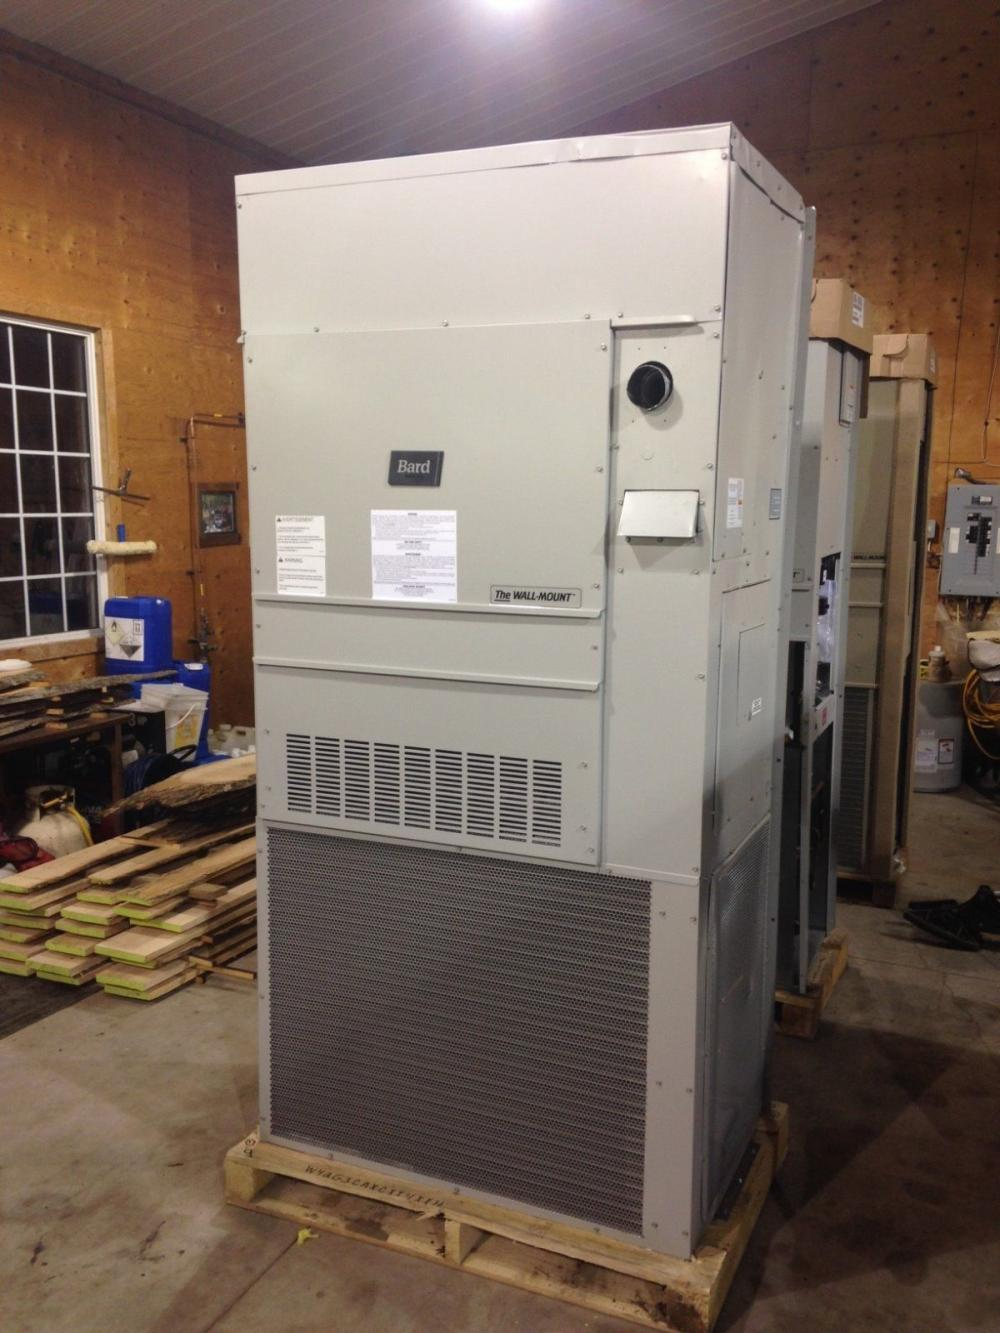 Bard Wall Mount Combo Furnace Air Conditioning Unit